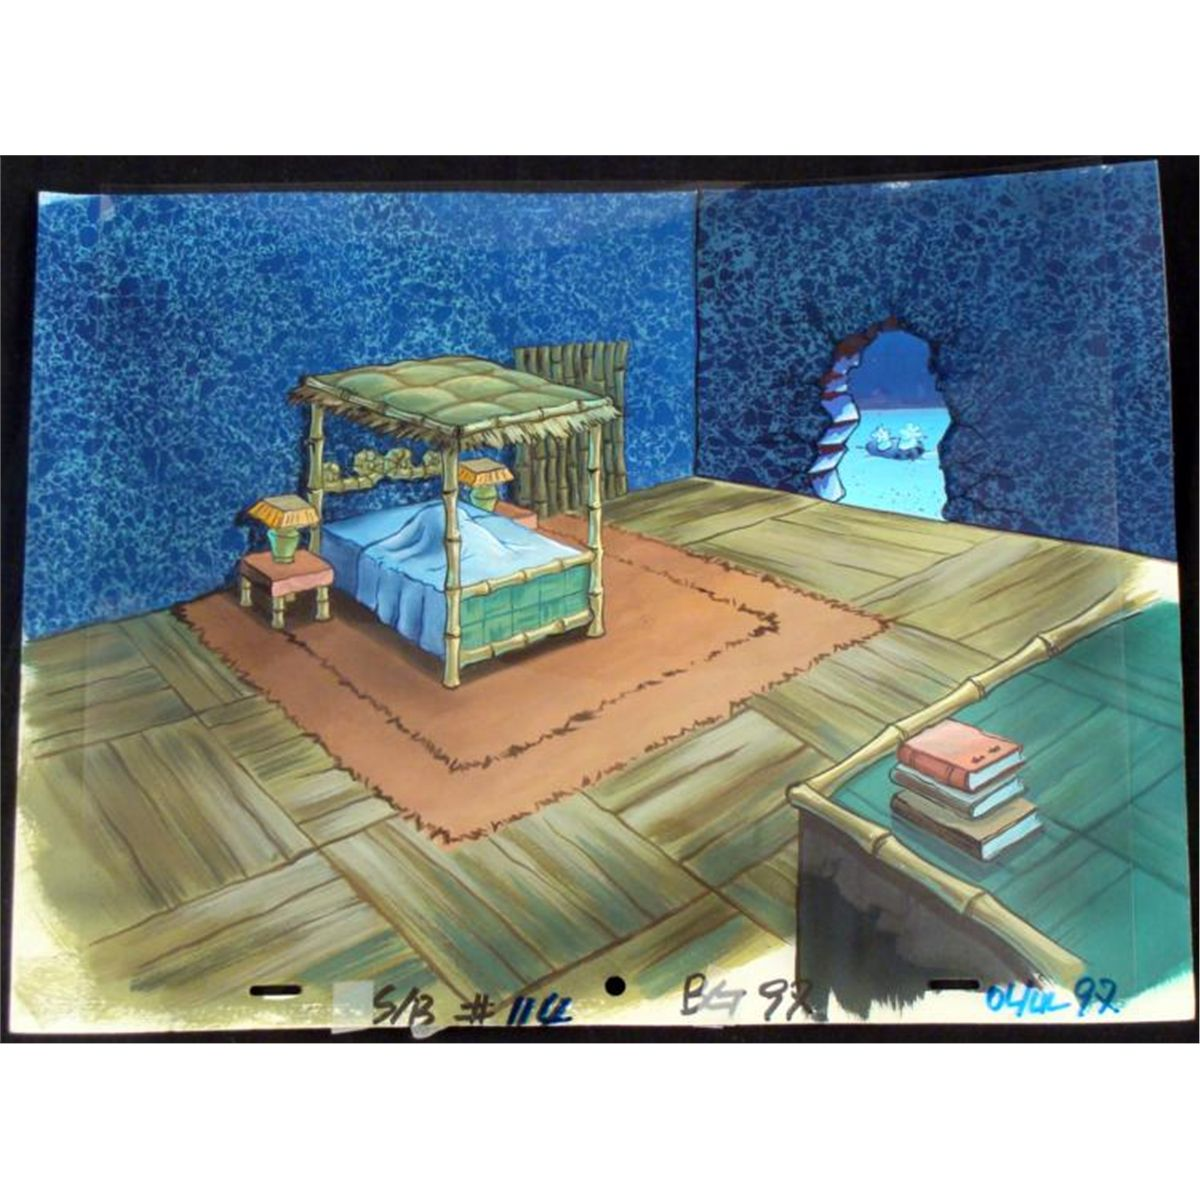 Living Room Background Animated: Original Cel & Background SpongeBobs Bedroom Animation